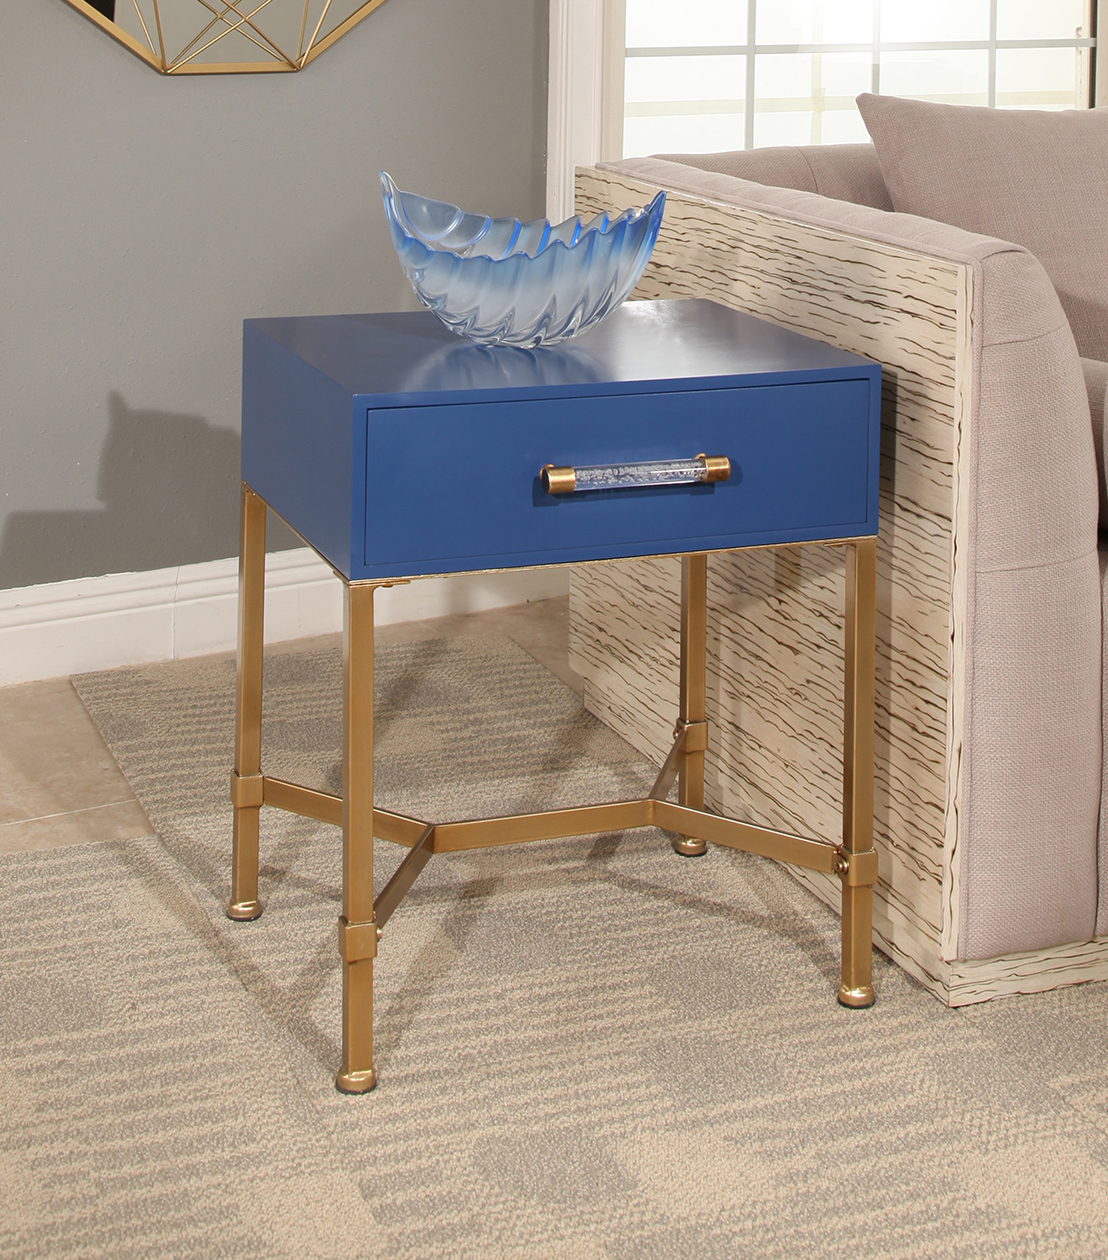 accent tables sophie gold iron end table blue blu metal mini lamp coffee and side computer target clear acrylic plexiglass kitchen dining room small with drawers antique ese lamps